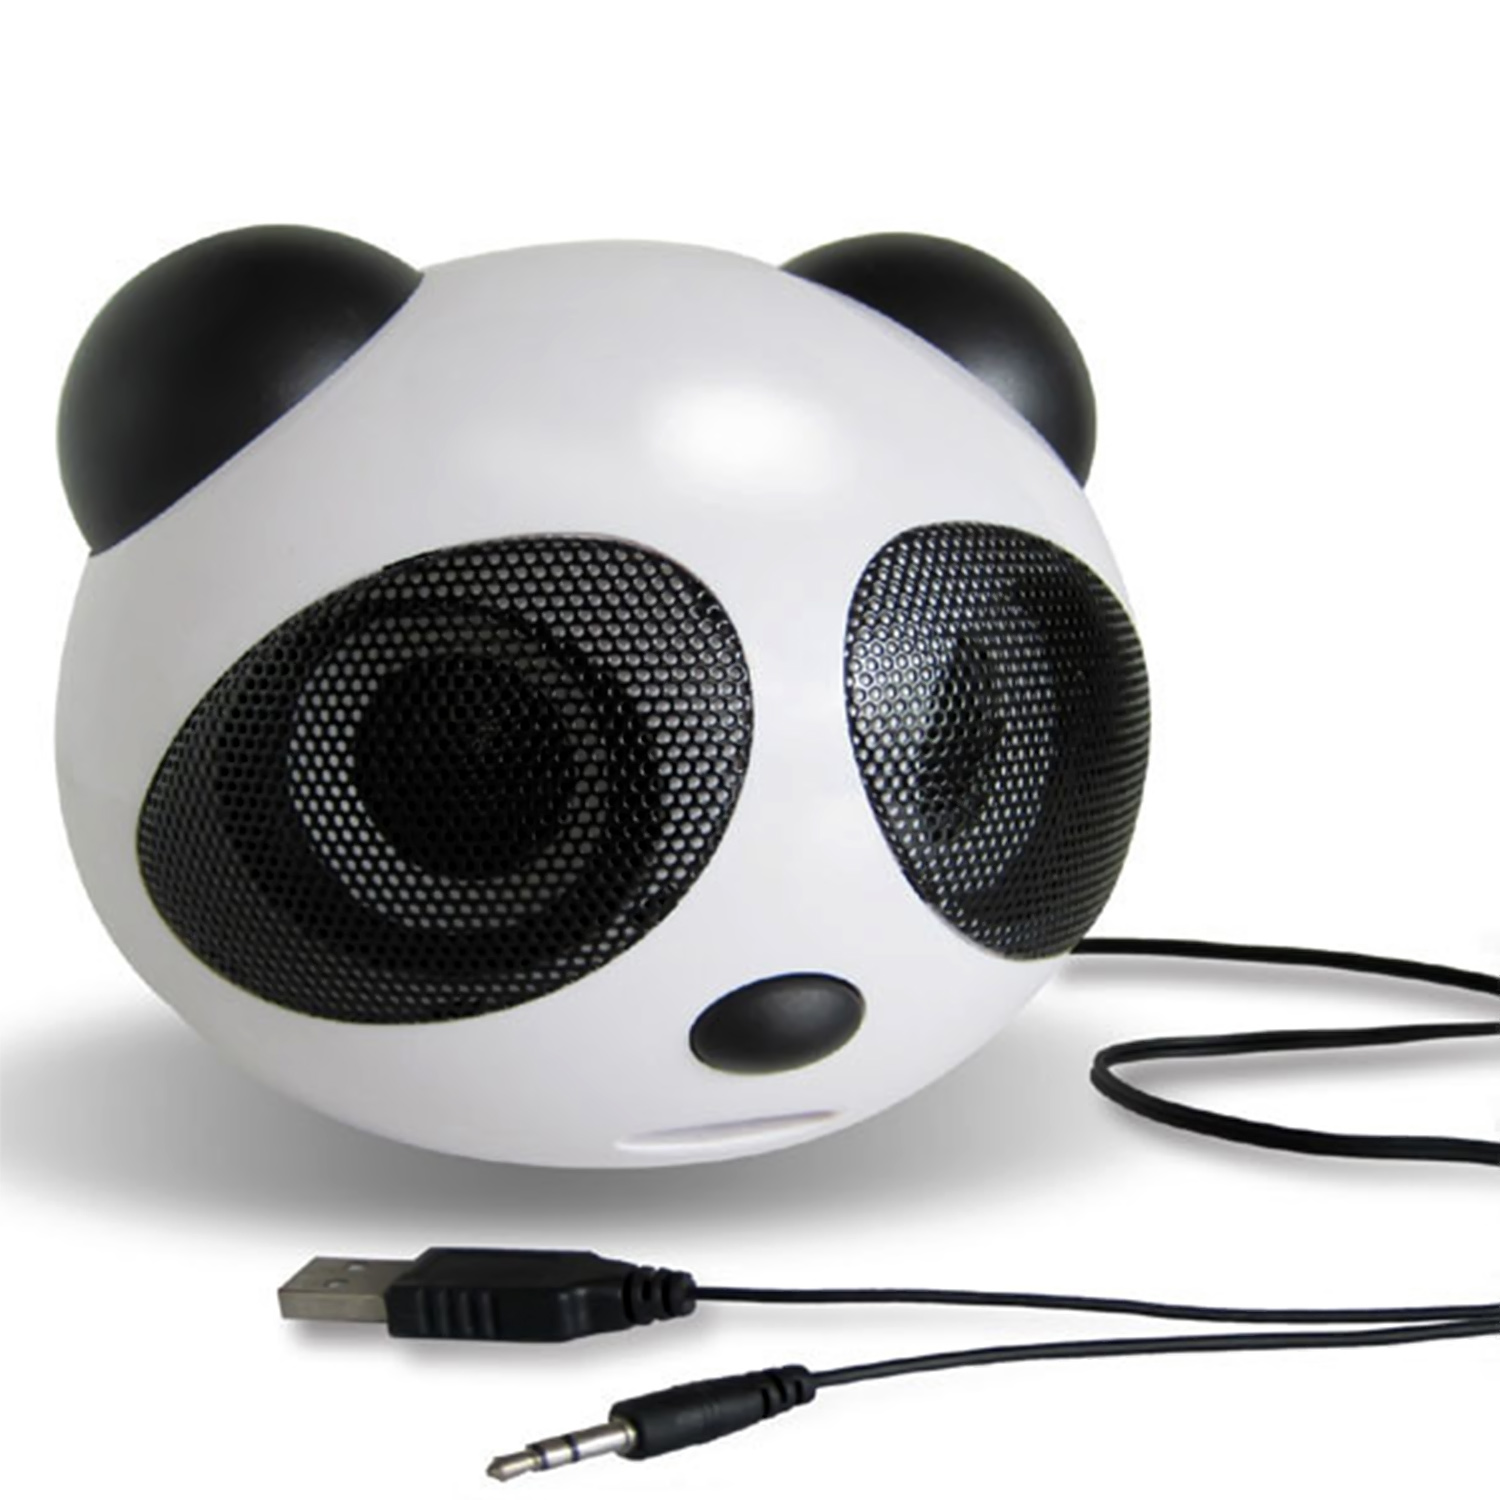 Gosear Mini Panda Bentuk Usb20 Portabel Aktif Speaker Stereo Untuk Kotak Usb 1 X 1x2 In Kabel User Manual